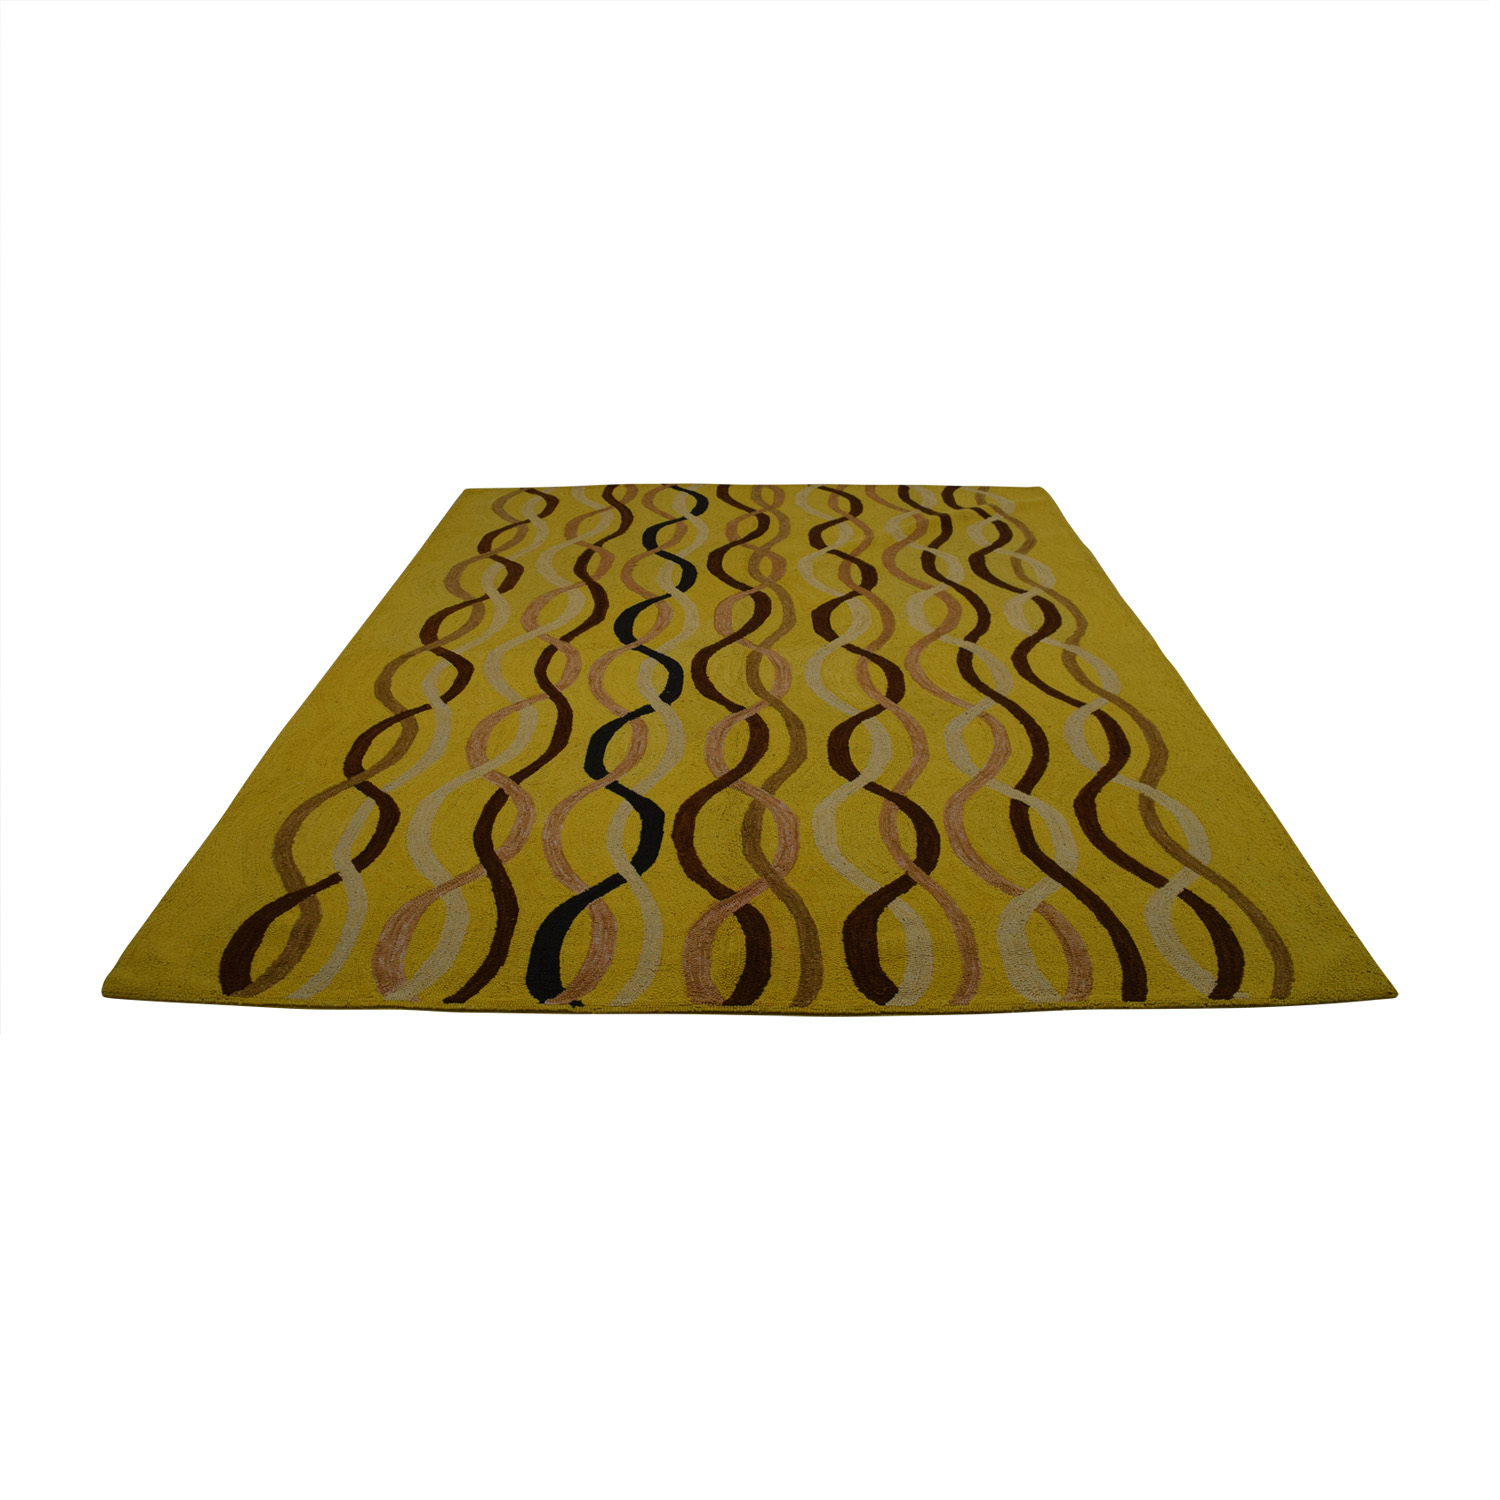 Obeetee ObeeteeHand Hooked Yellow Brown Wavy Lines Rug Yellow/Brown/White